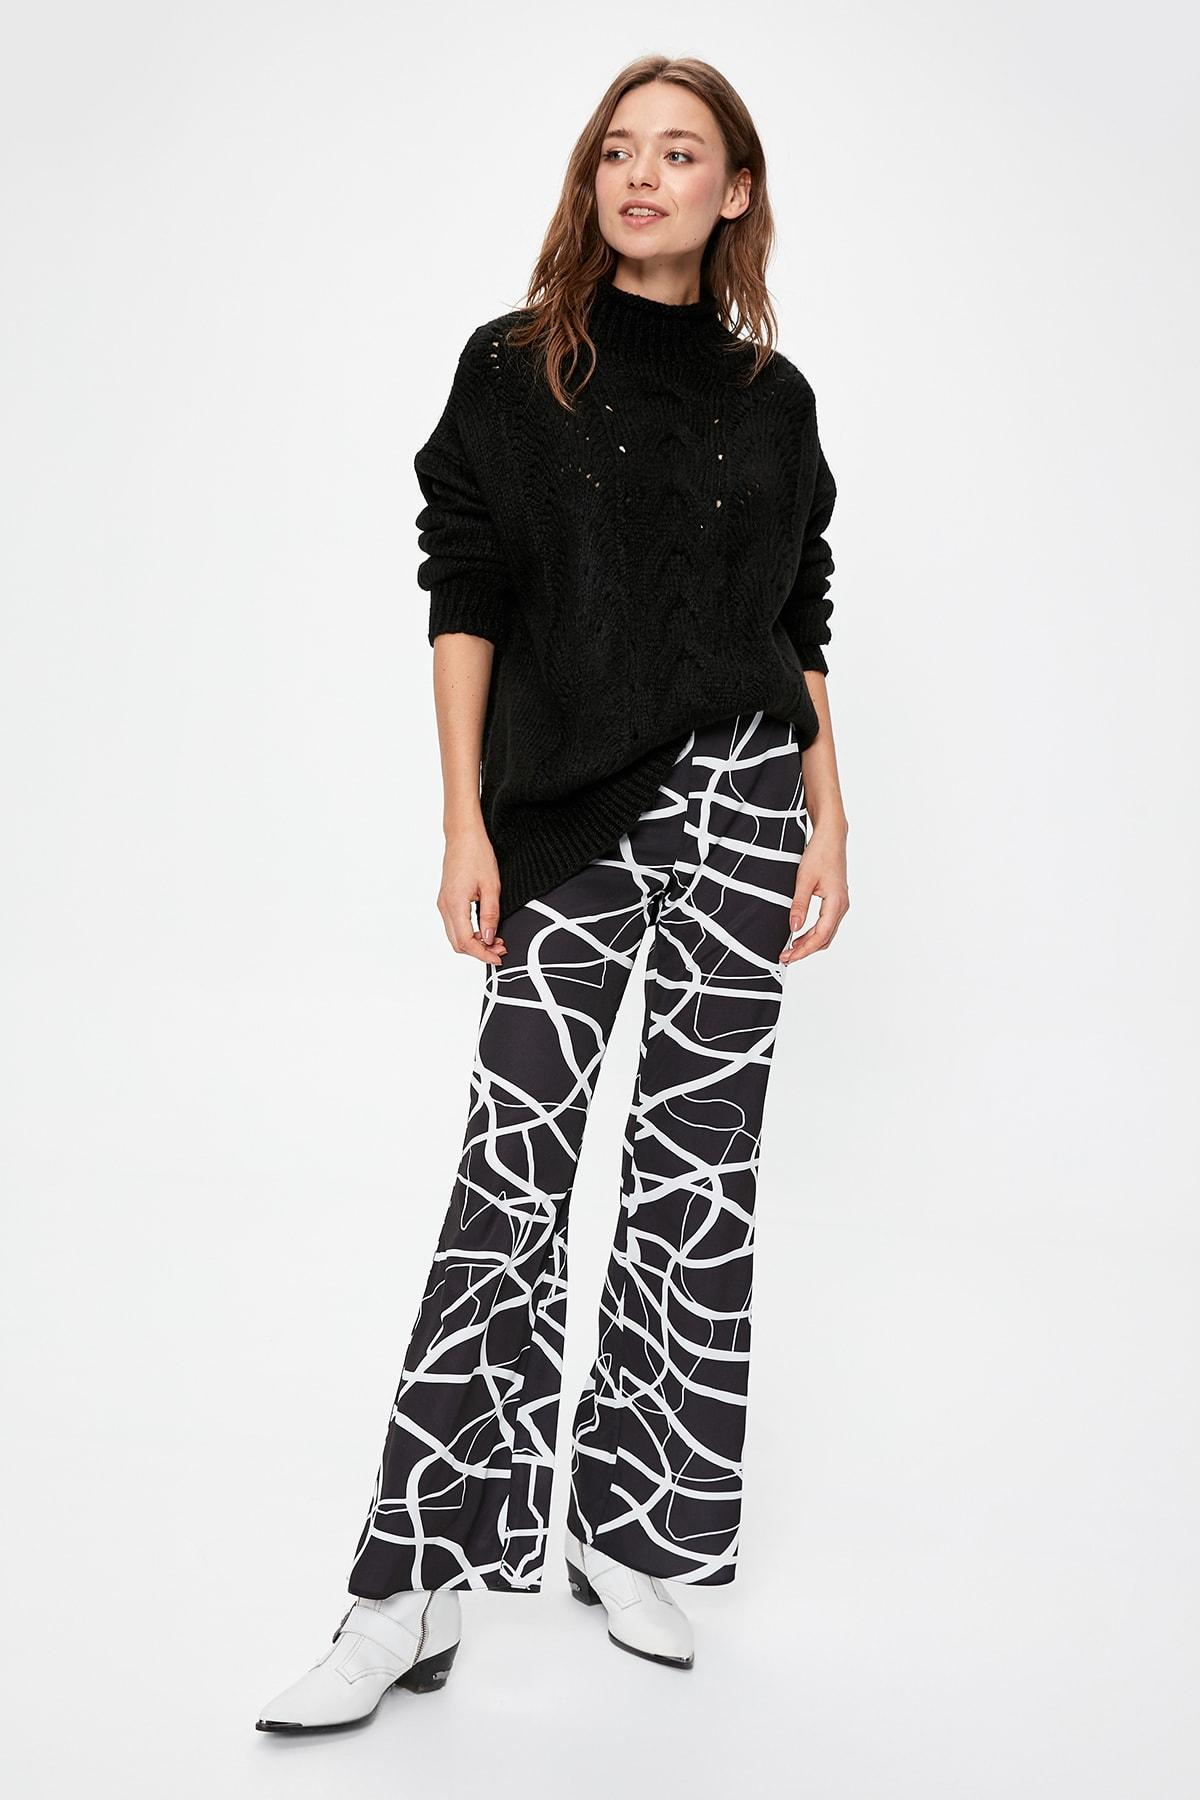 Trendyol Black Pattern Flare Pants TWOAW20PL0101